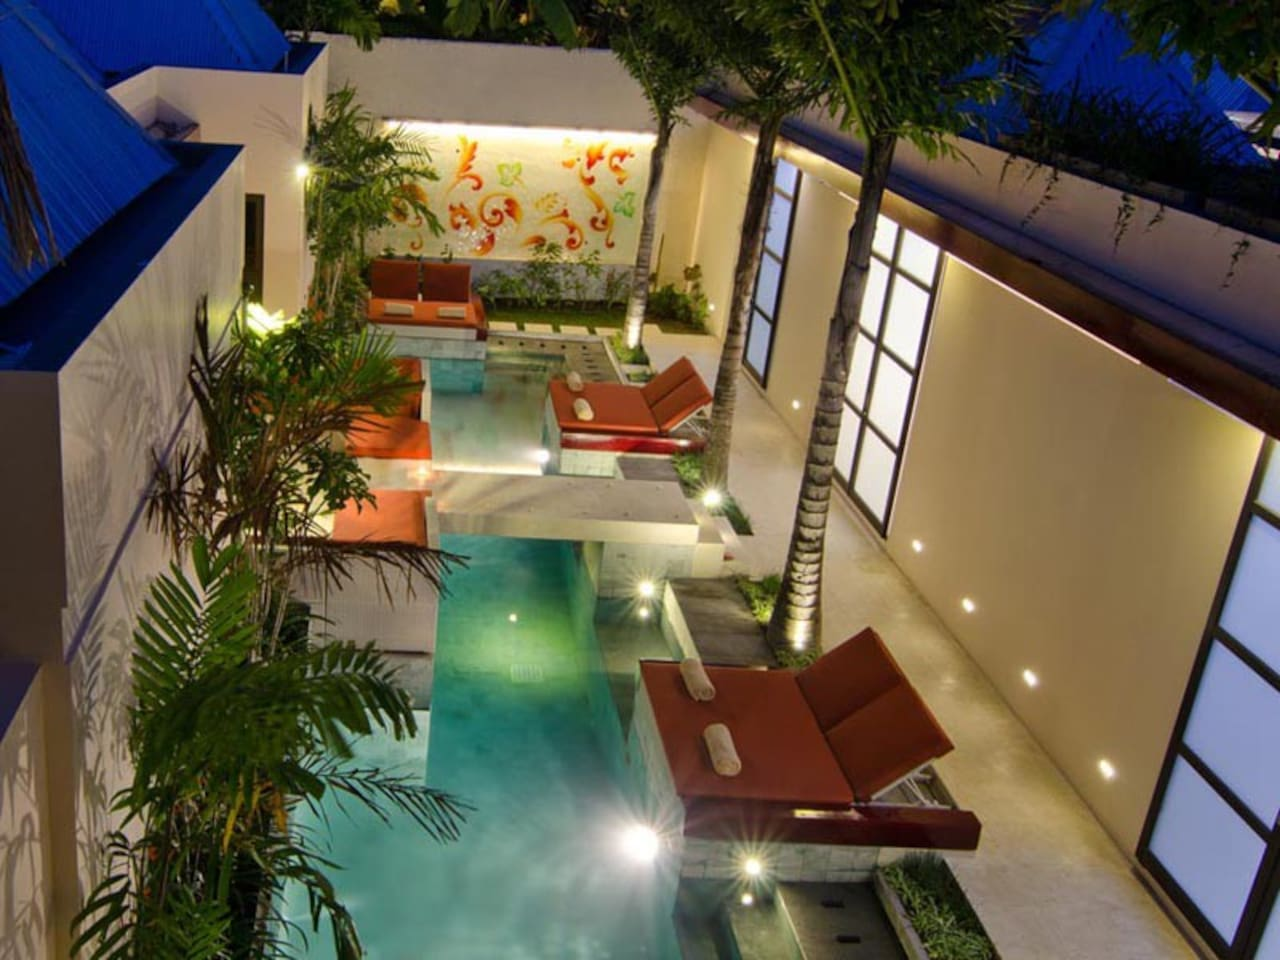 Bali Ginger Suites; Poolside Suites #1, #2, #3 on the right side of the pool and across the bridge Poolside Terrace Suites #4 & #5. Balcony Suites #6 & #7 are upstairs.